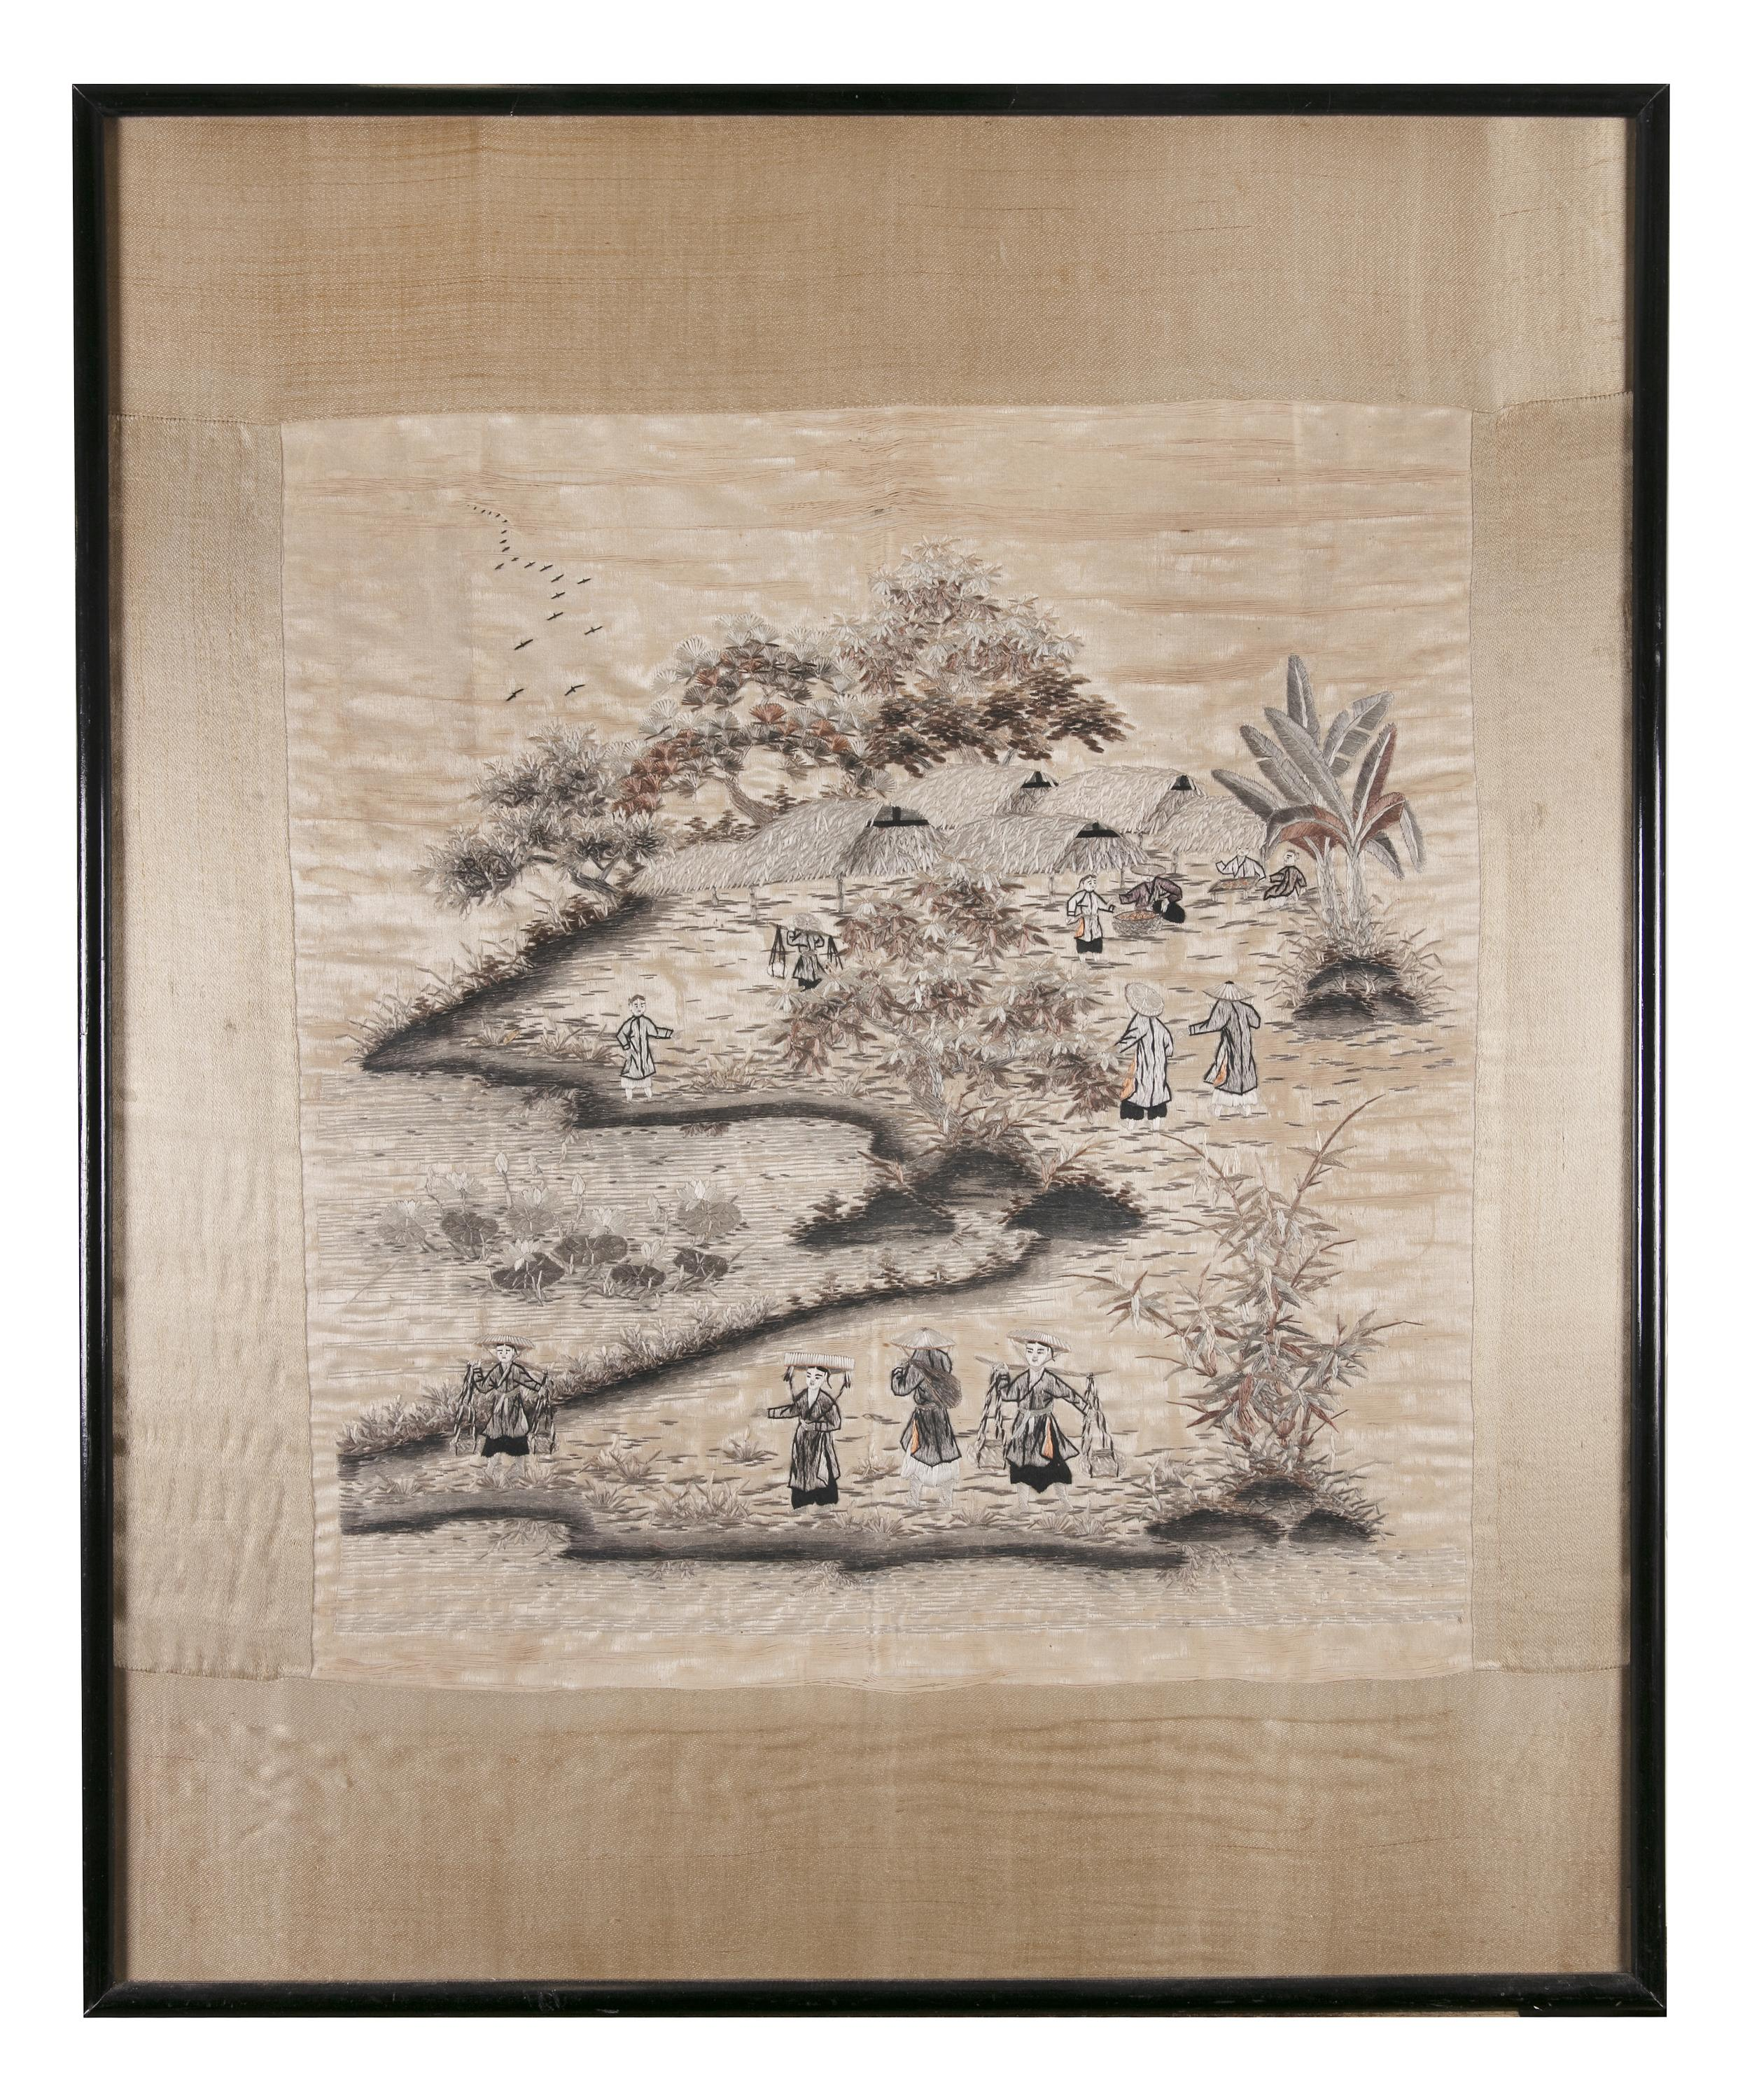 A 'PROCESSION' EMBROIDERED SILK PANEL Vietnam / Indochina, 20th century 48,5 x 46 cm TRANH LỤA - Image 2 of 6